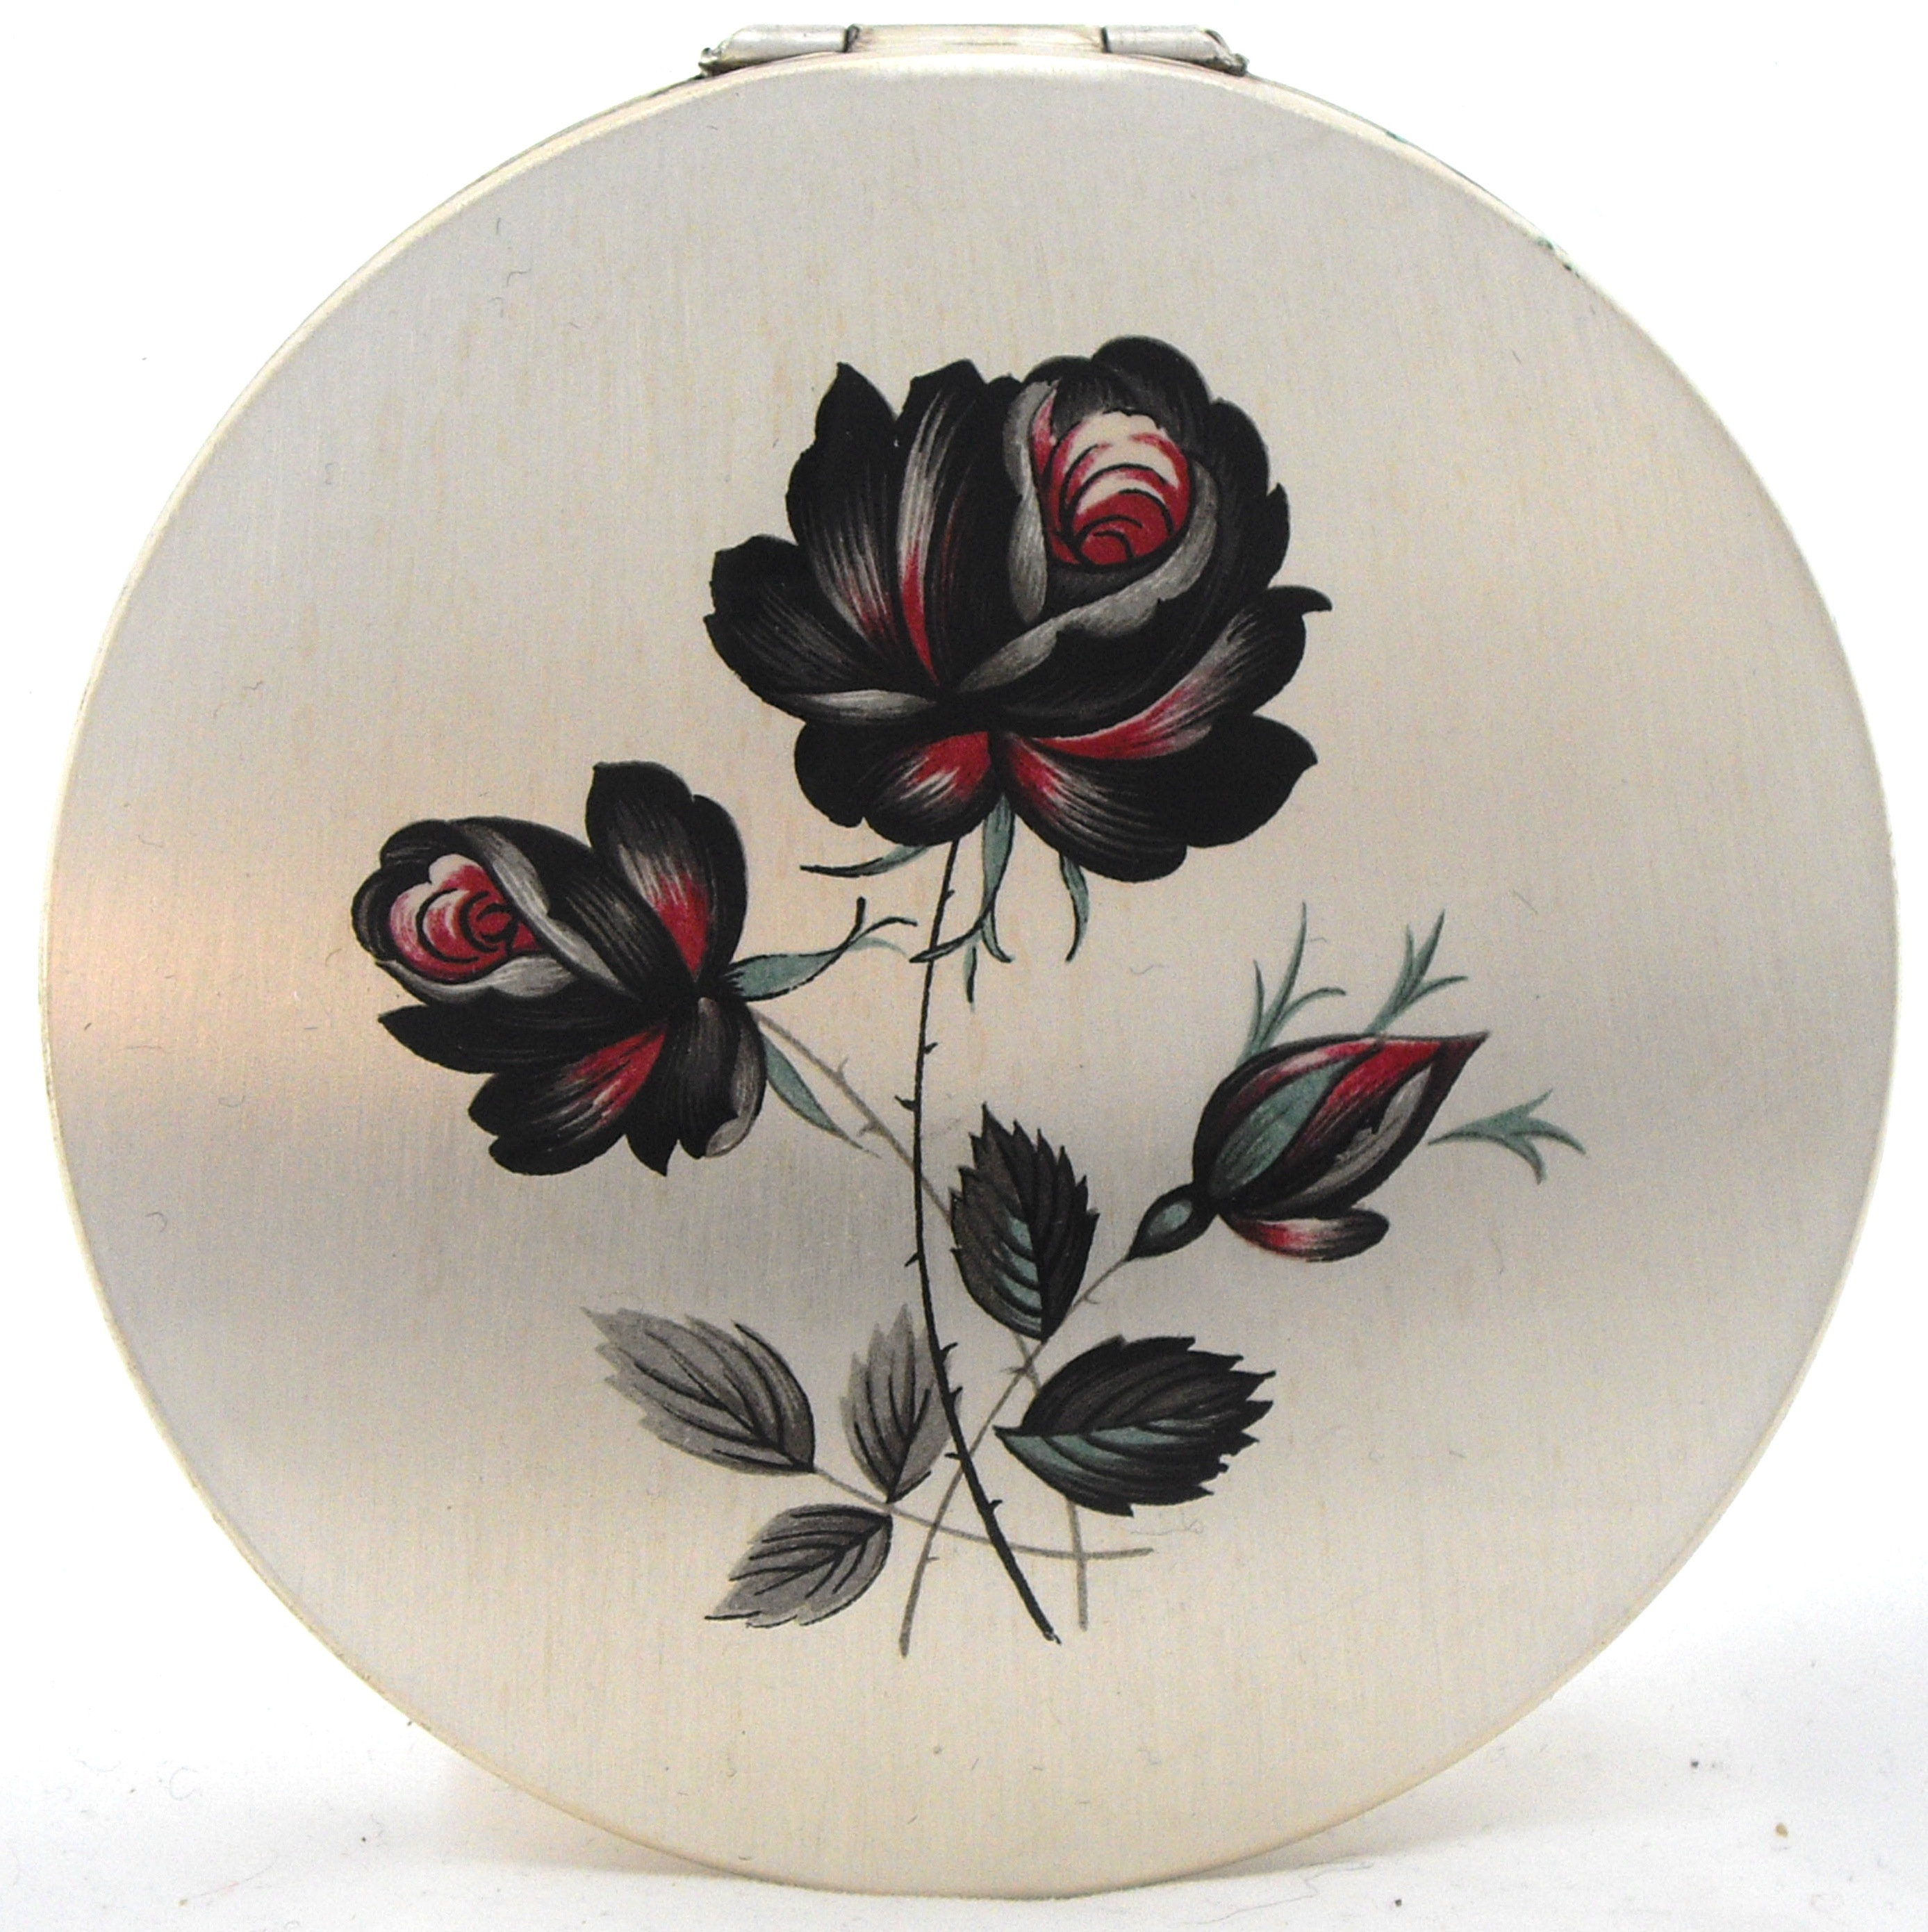 vintage rose compact by Stratton